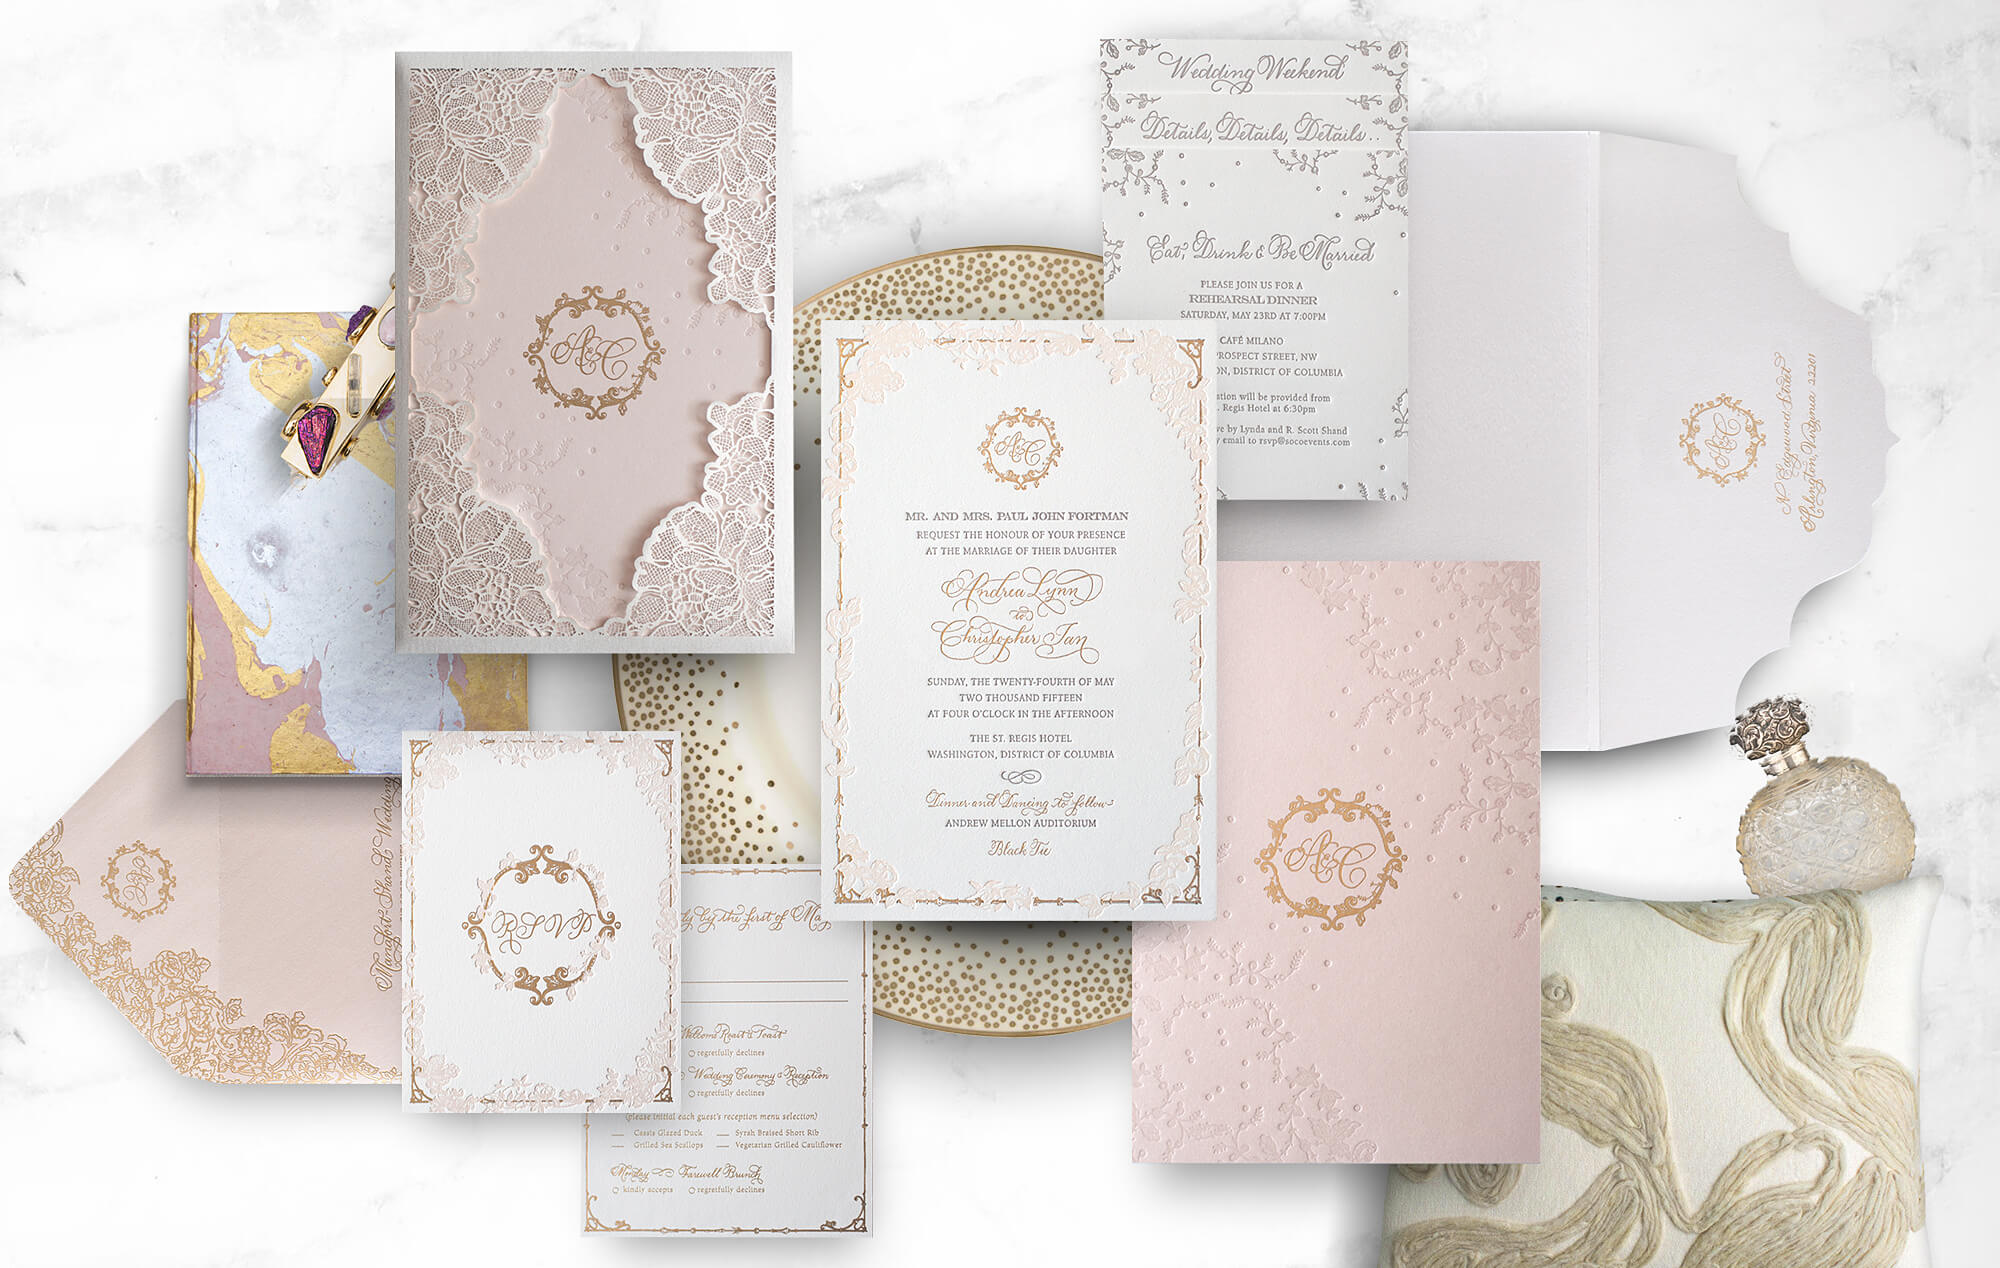 Laser cut lace wedding invitation in blush, champagne and gold